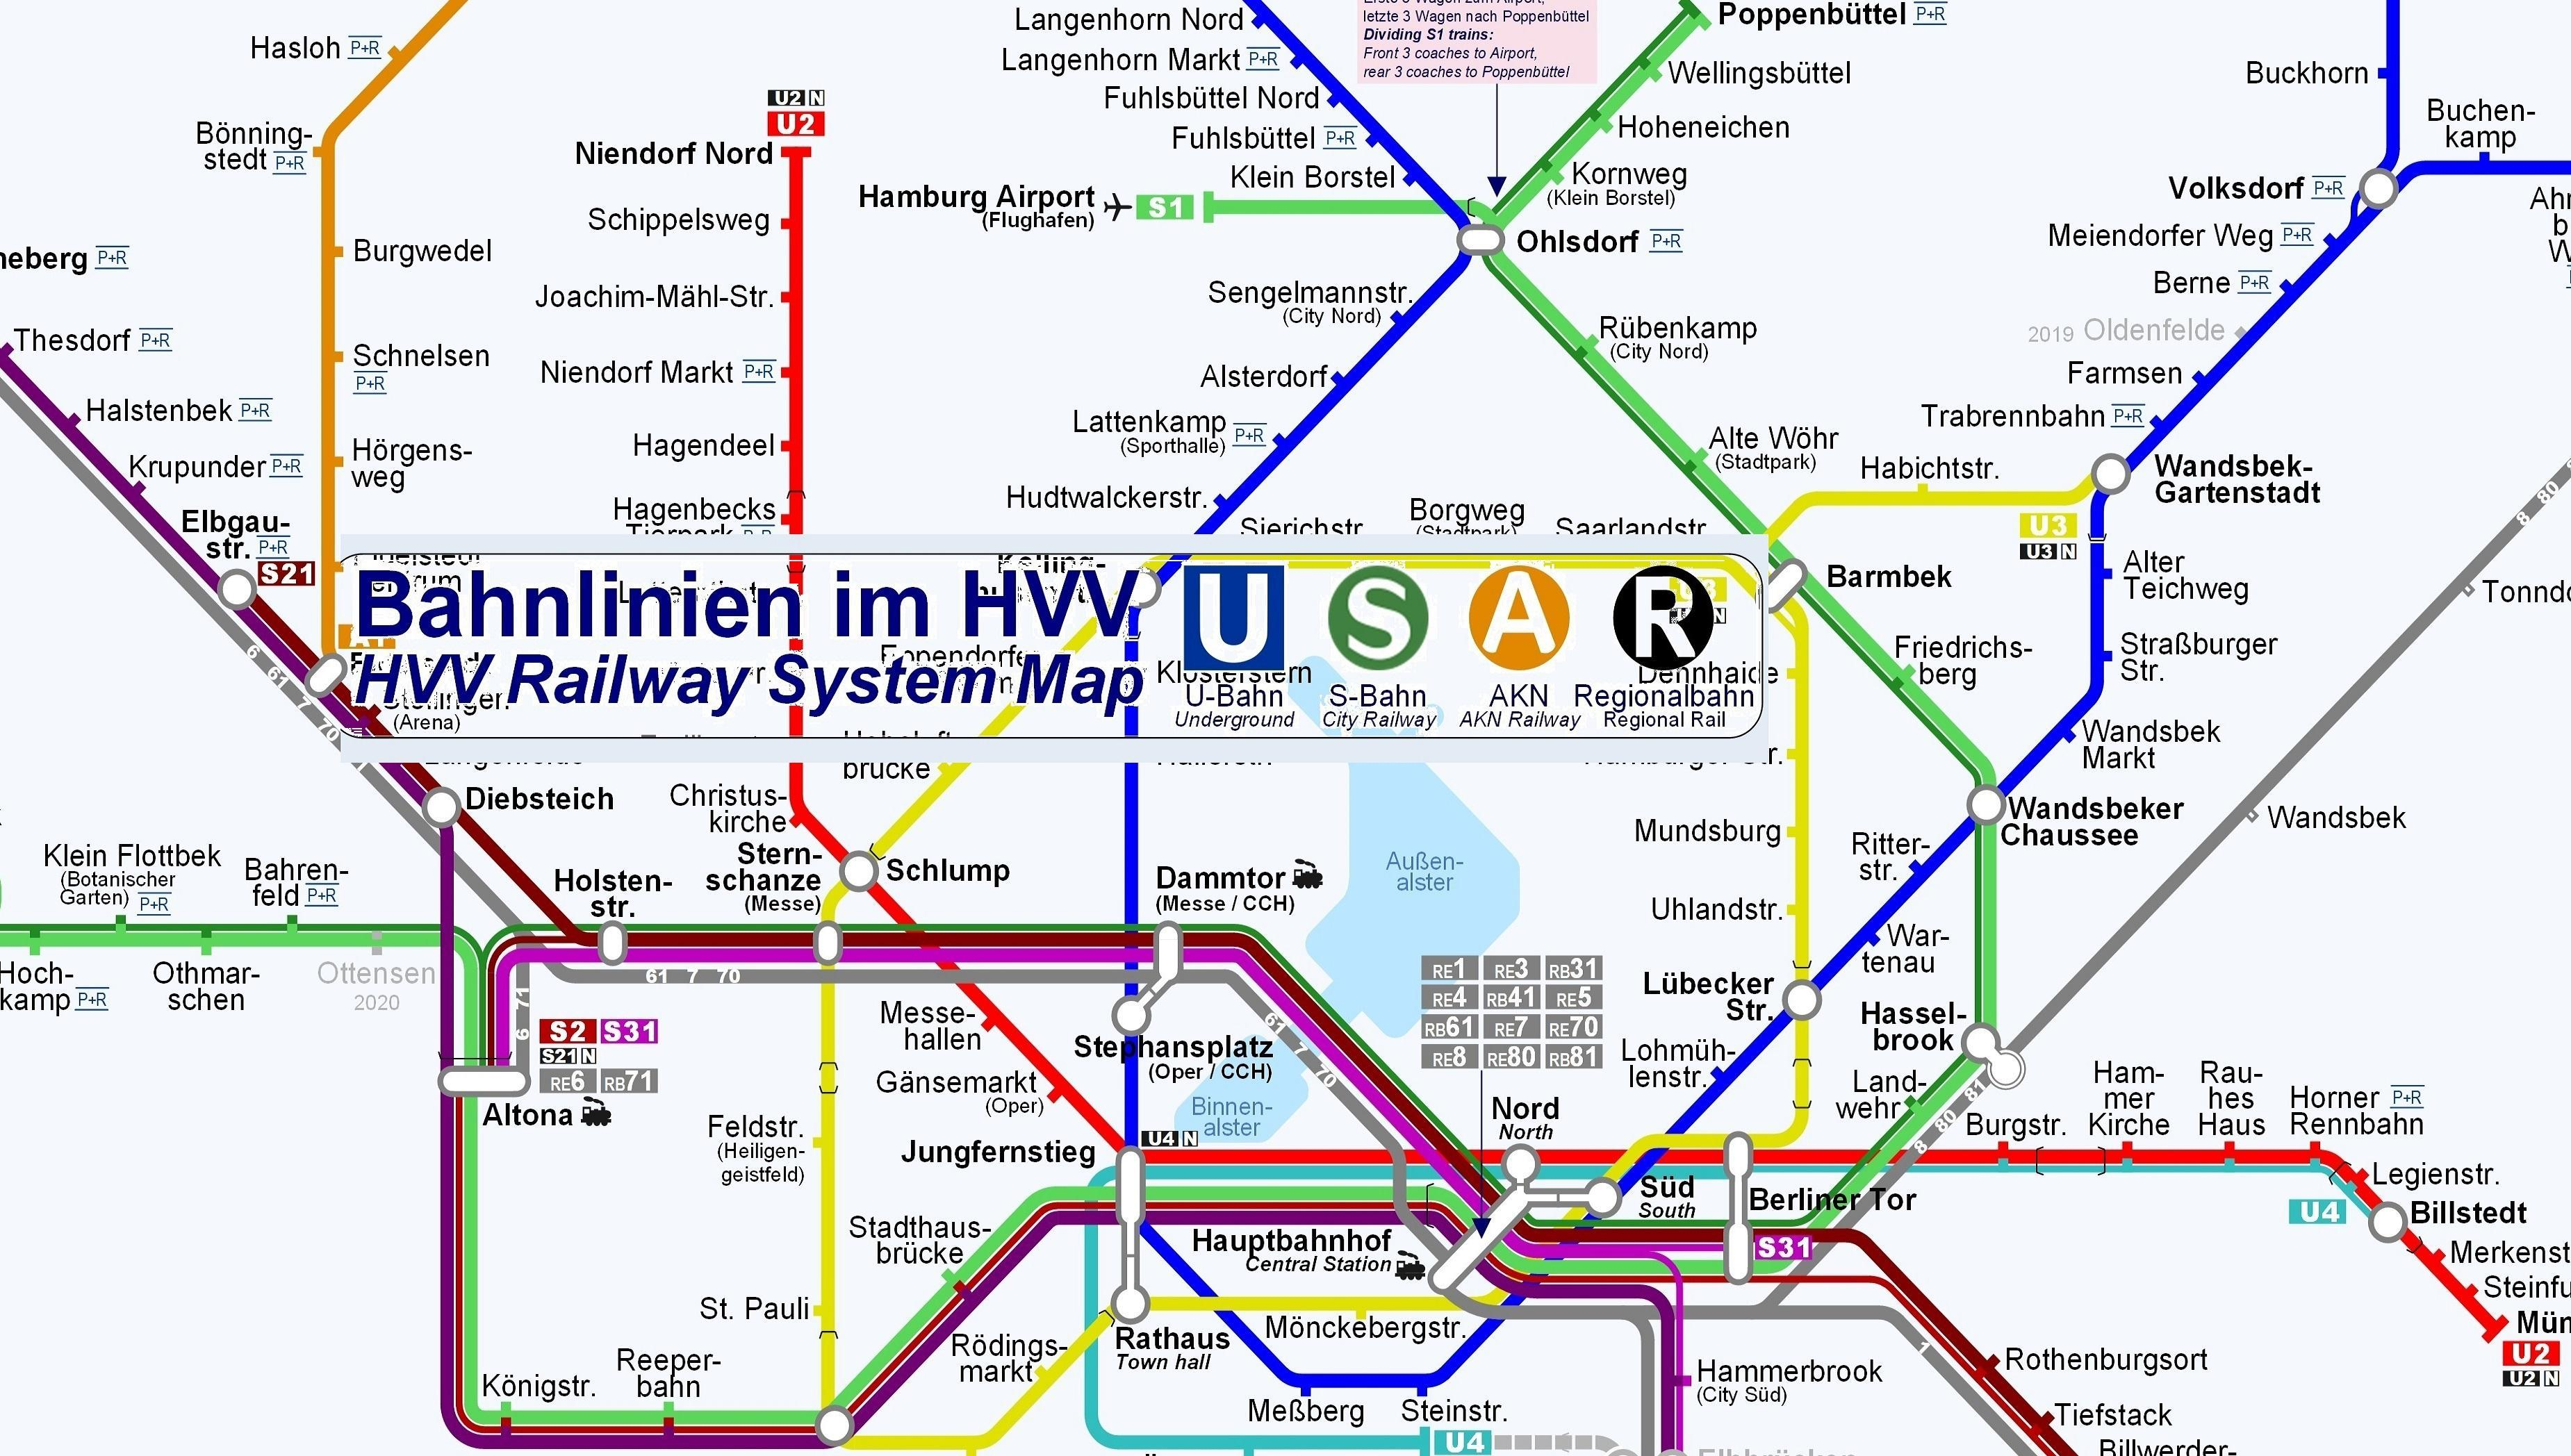 Hamburg Subway Map.Hamburg Subway Metro Train Offline Mapハンブルク電車路線図無料 For